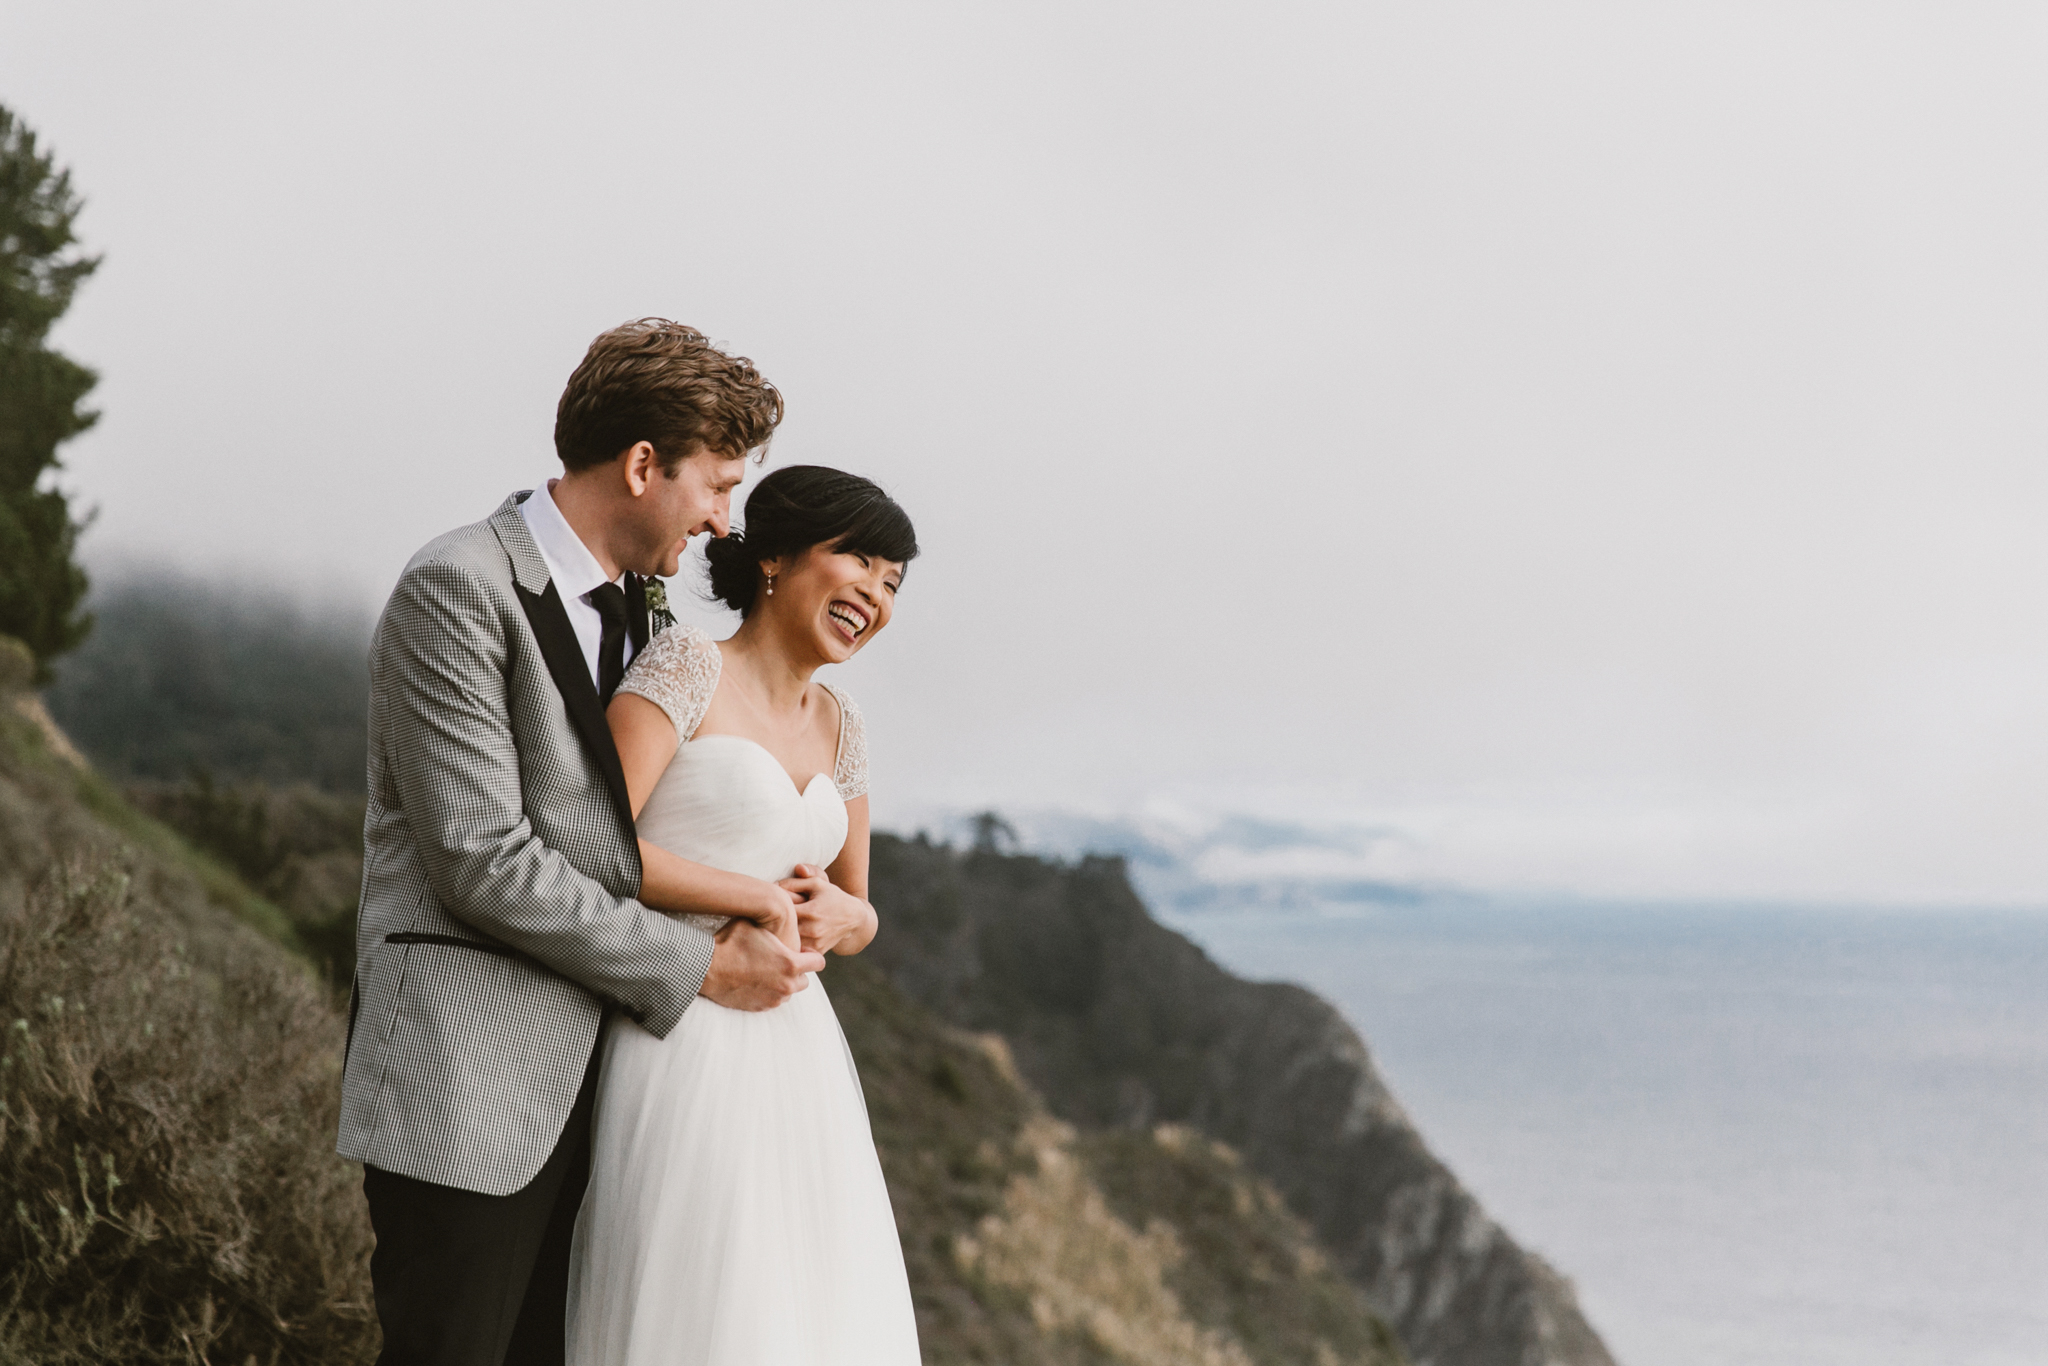 BIG SUR BAKERY WEDDING -10137